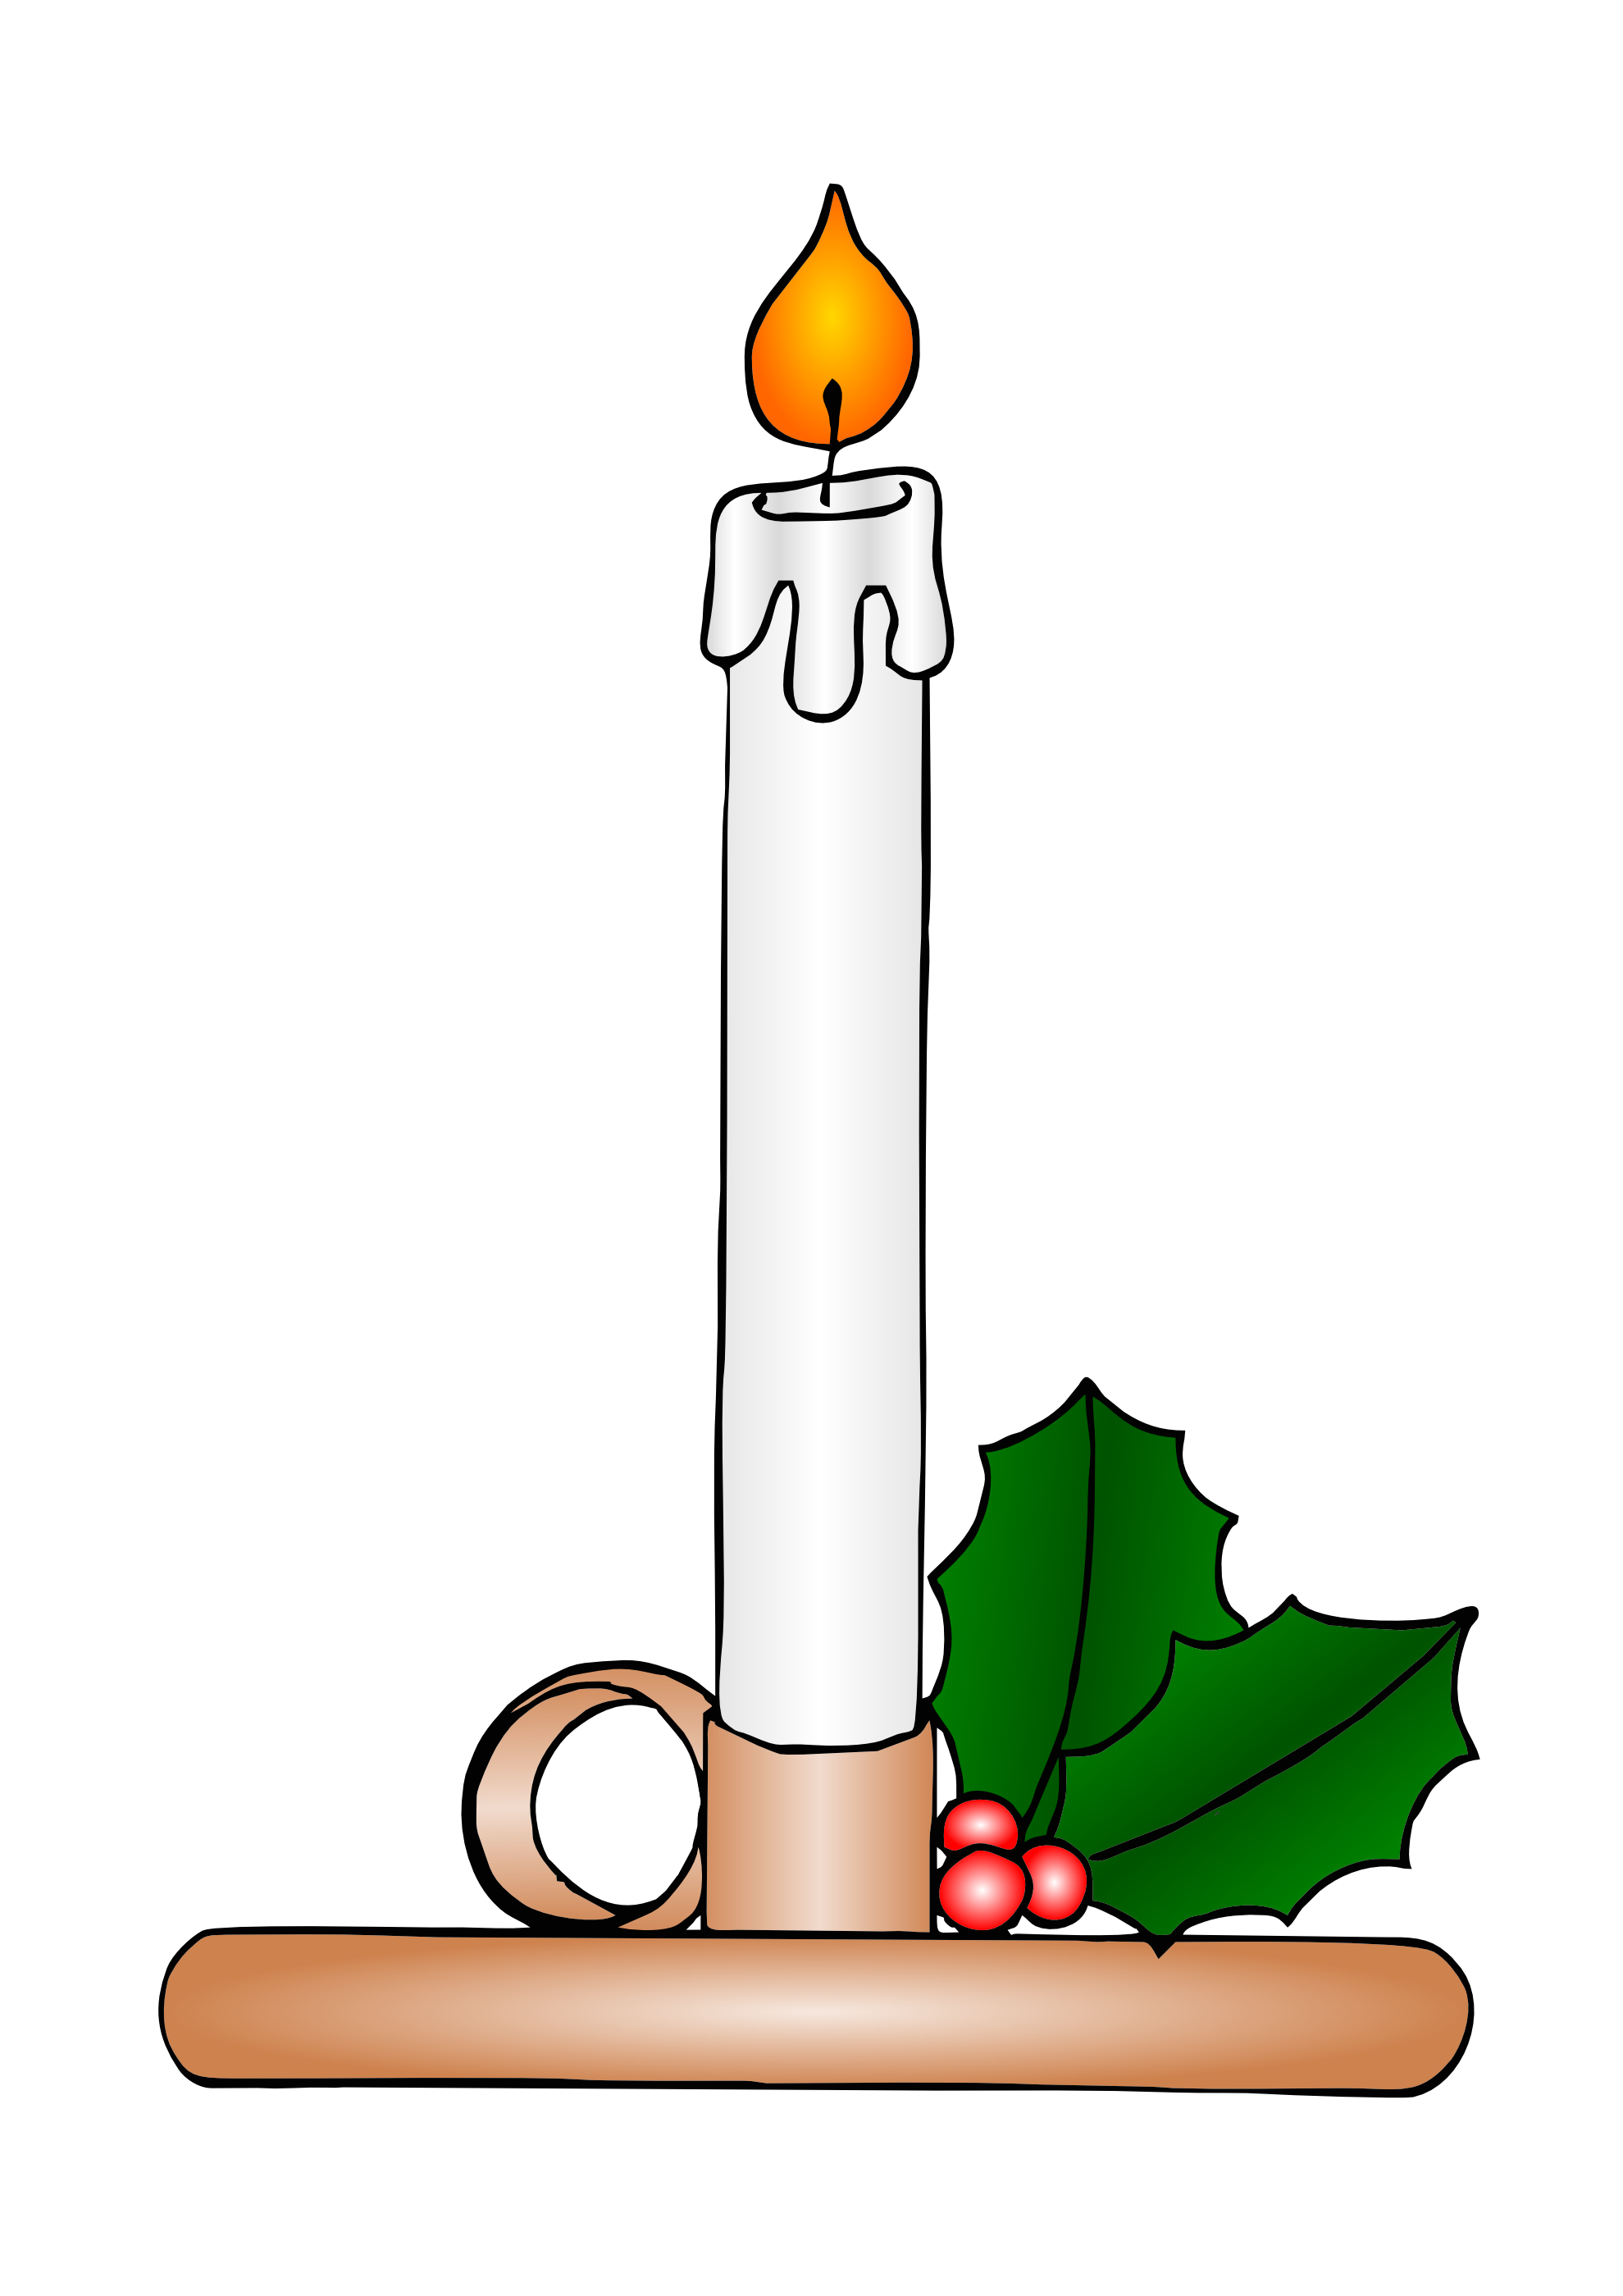 image royalty free download Free on dumielauxepices net. Book clipart candle